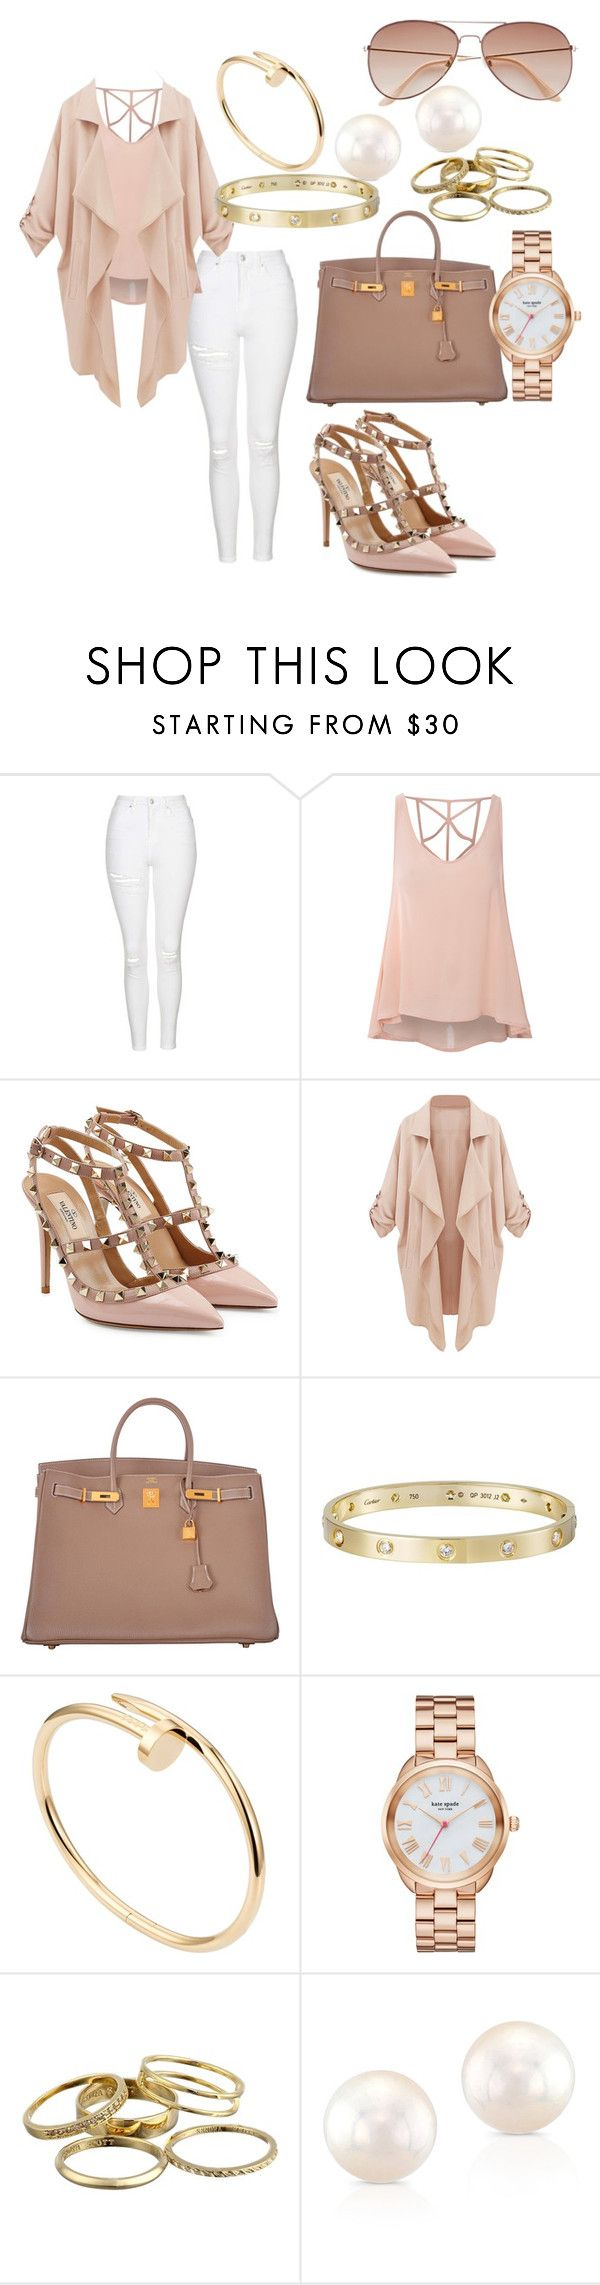 """""""Untitled #118"""" by parrislyonnie ❤ liked on Polyvore featuring Topshop, Glamorous, Valentino, Hermès, Cartier, Kate Spade, Kendra Scott and H&M"""